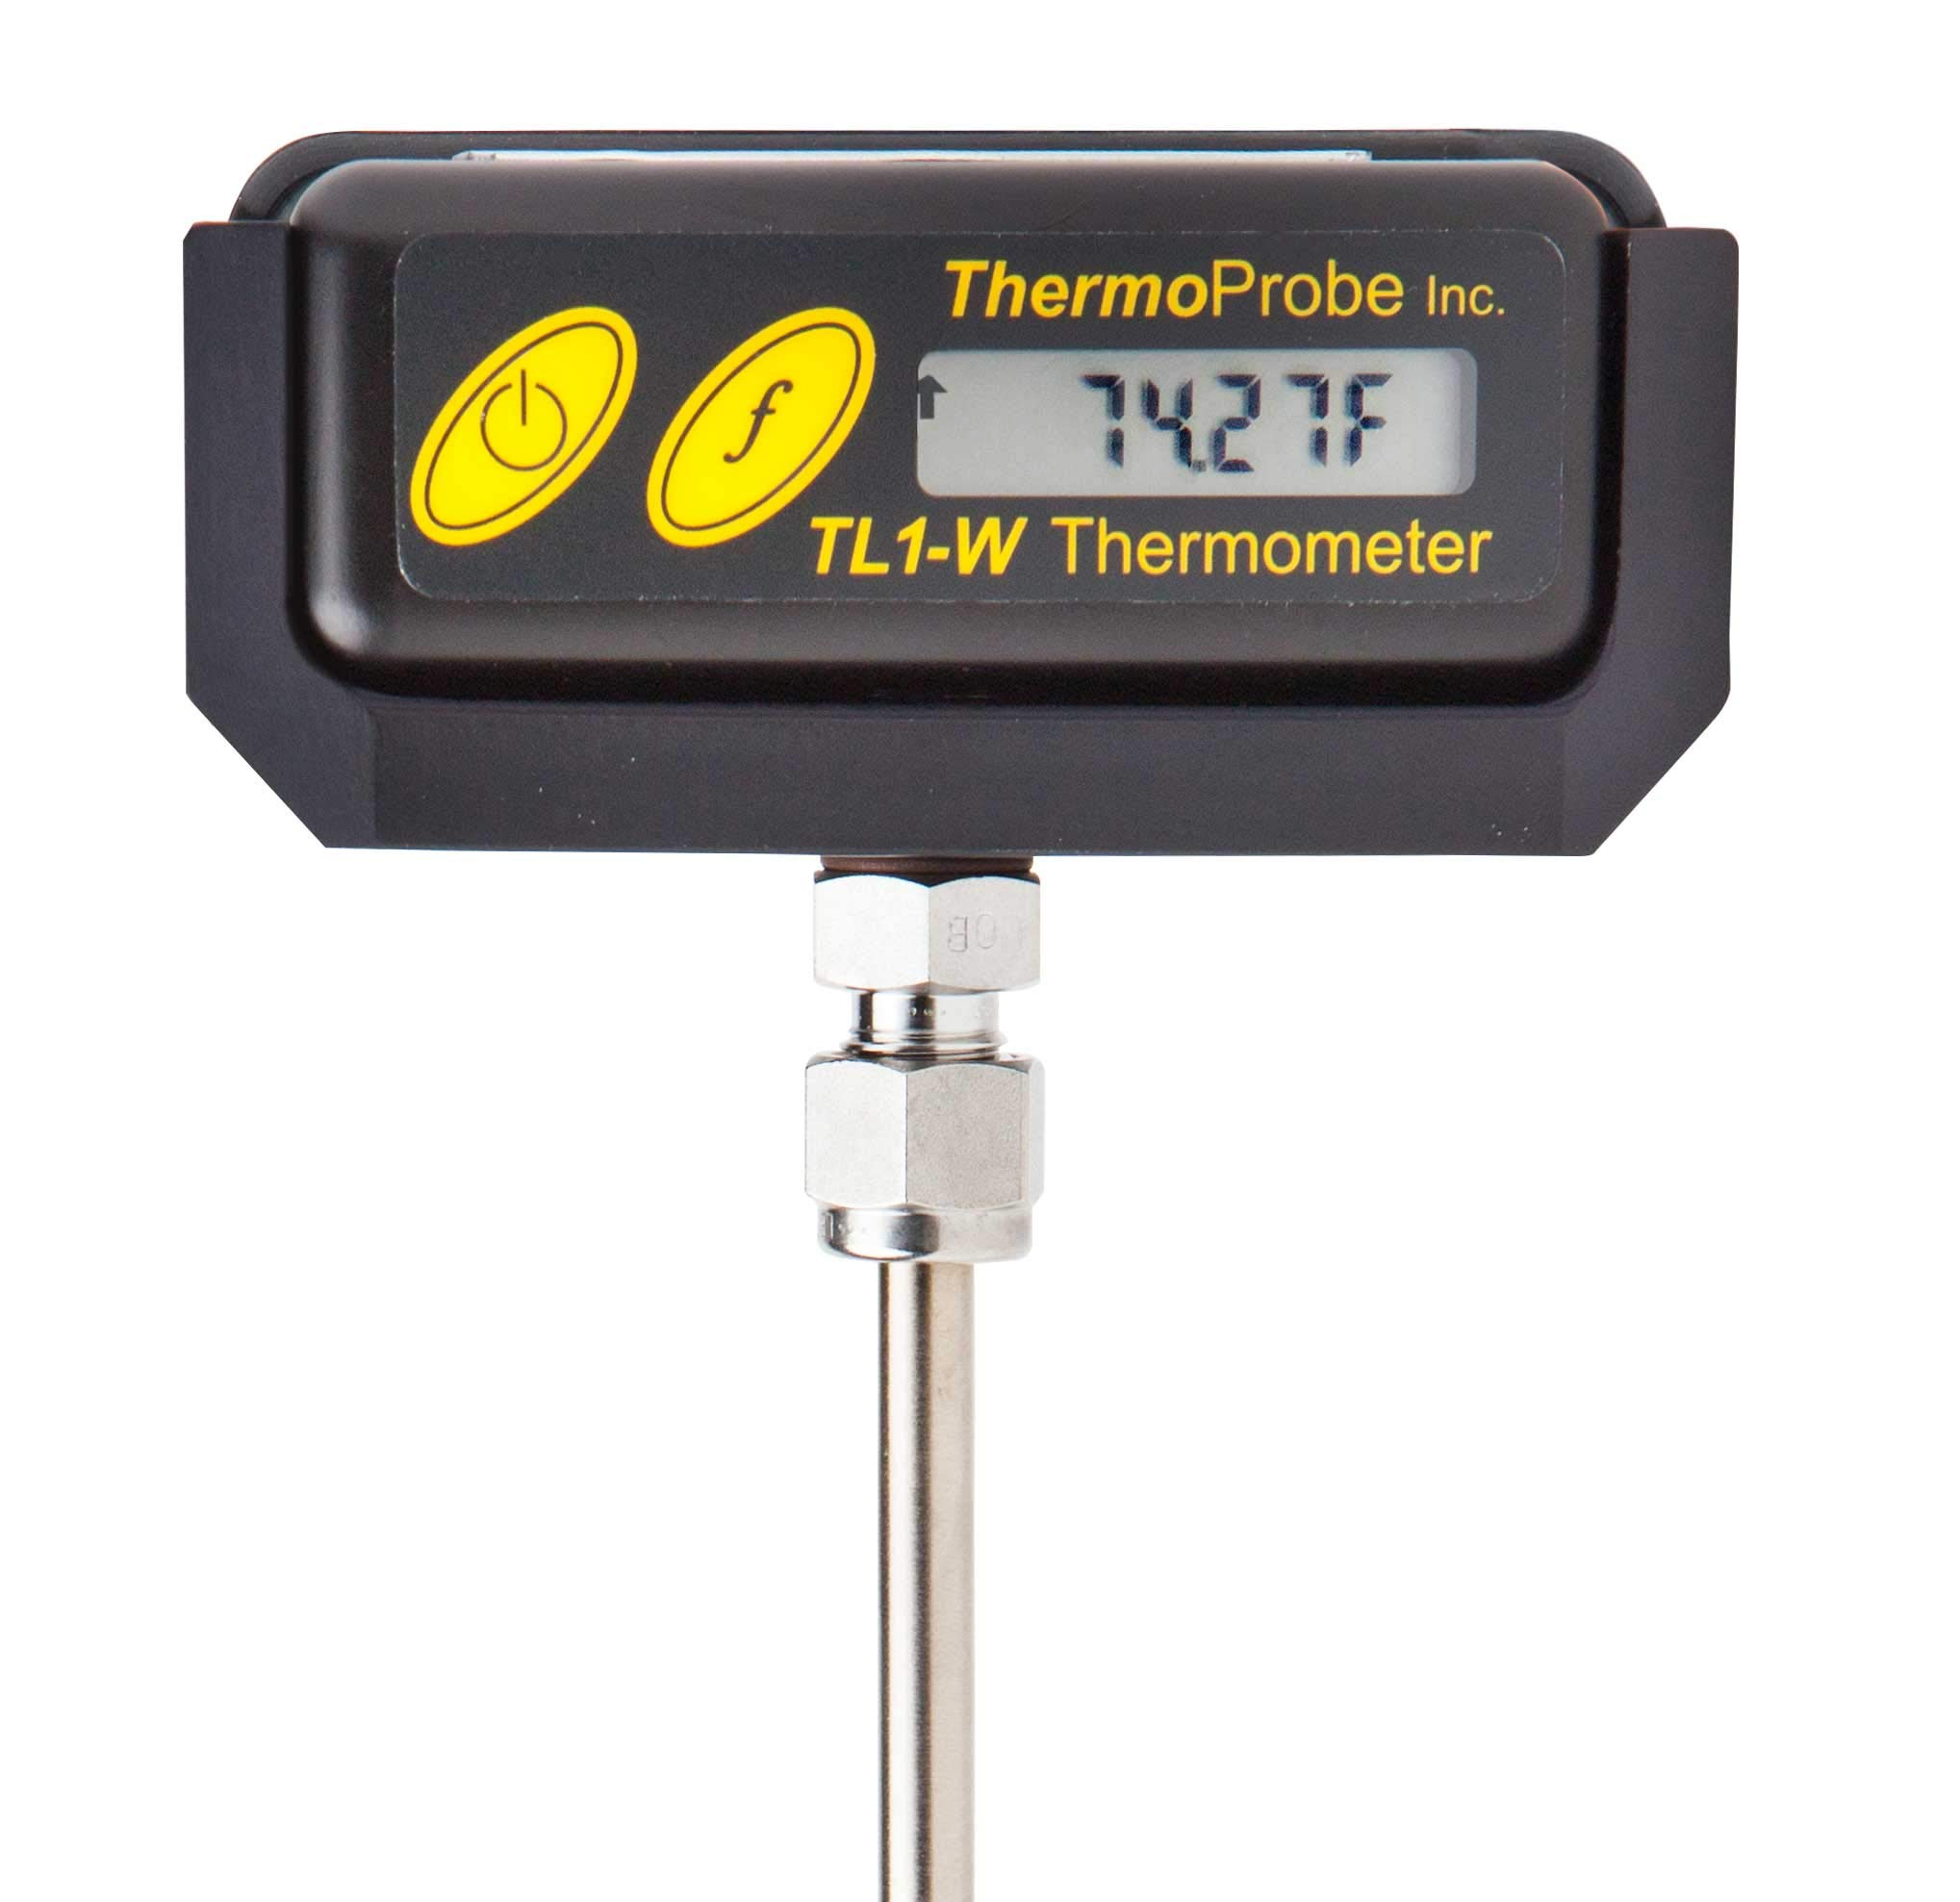 TL1-W Intrinsically Safe Portable Stem Thermometer for Laboratory and Field Reference – Rugged Design with 12'' Stem and NIST traceable, ISO/IEC 17025 Accredited Report of Calibration in Fahrenheit